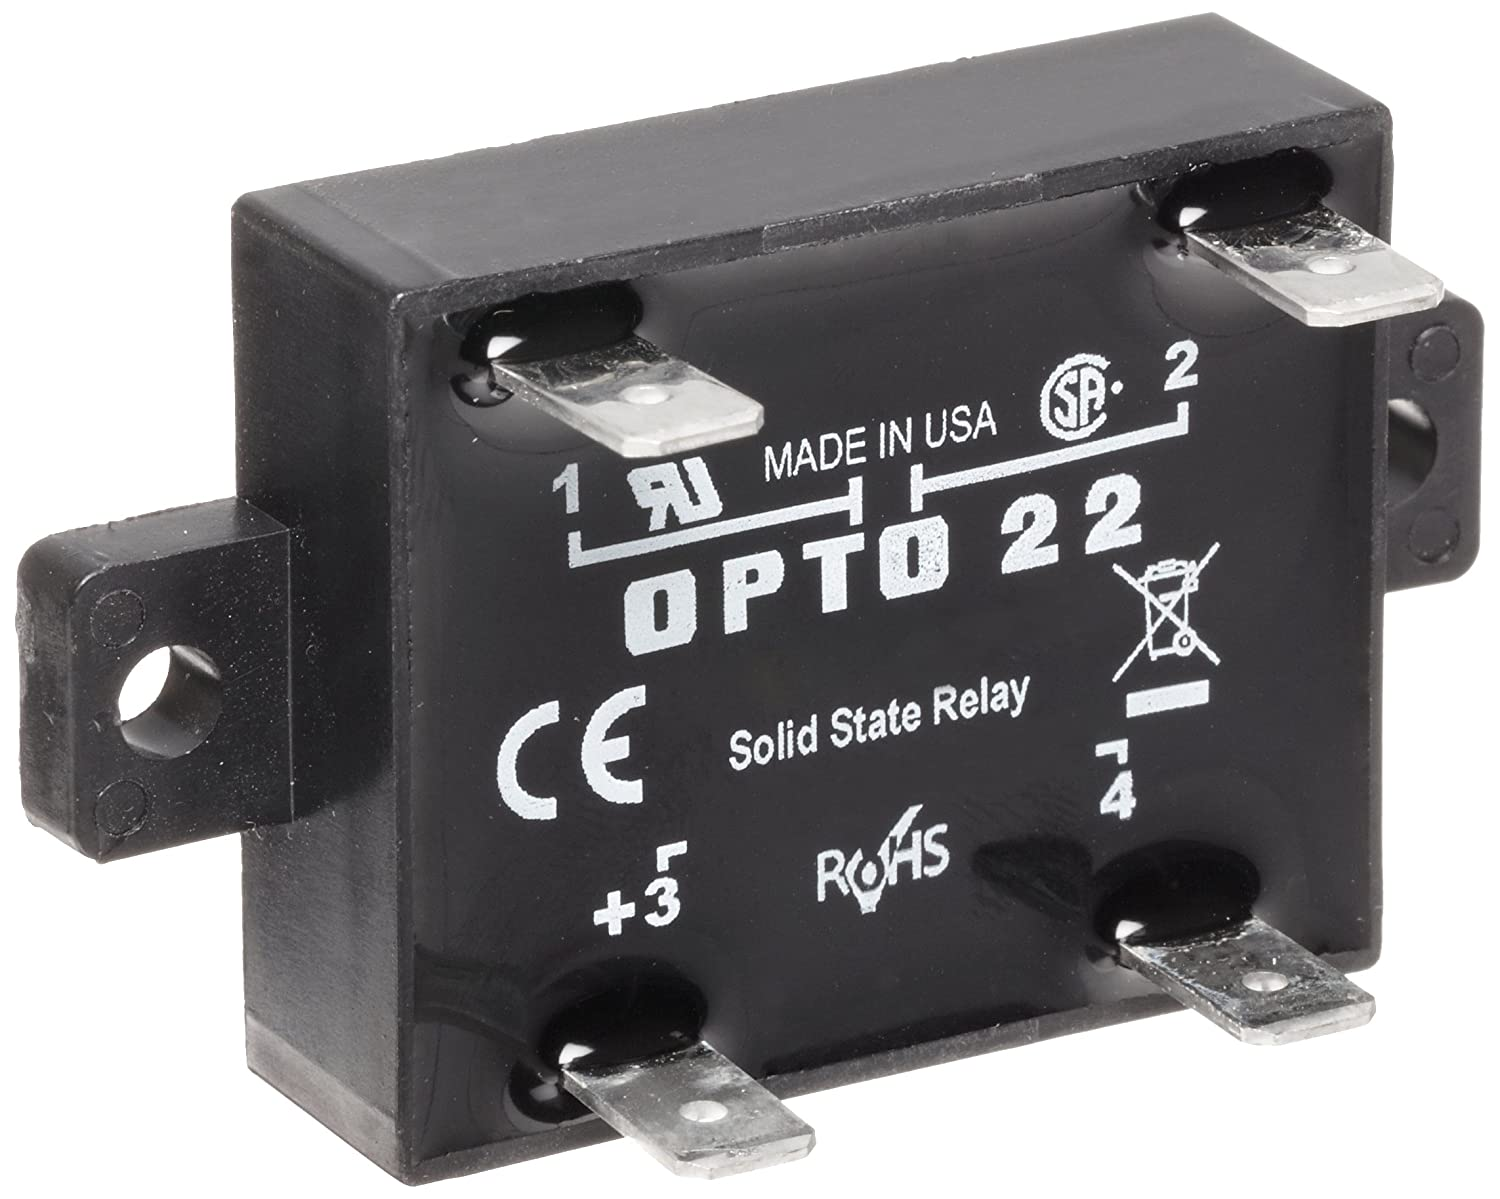 Opto 22 Z240D10 Z Model DC Control Solid State Relay 240 VAC 10